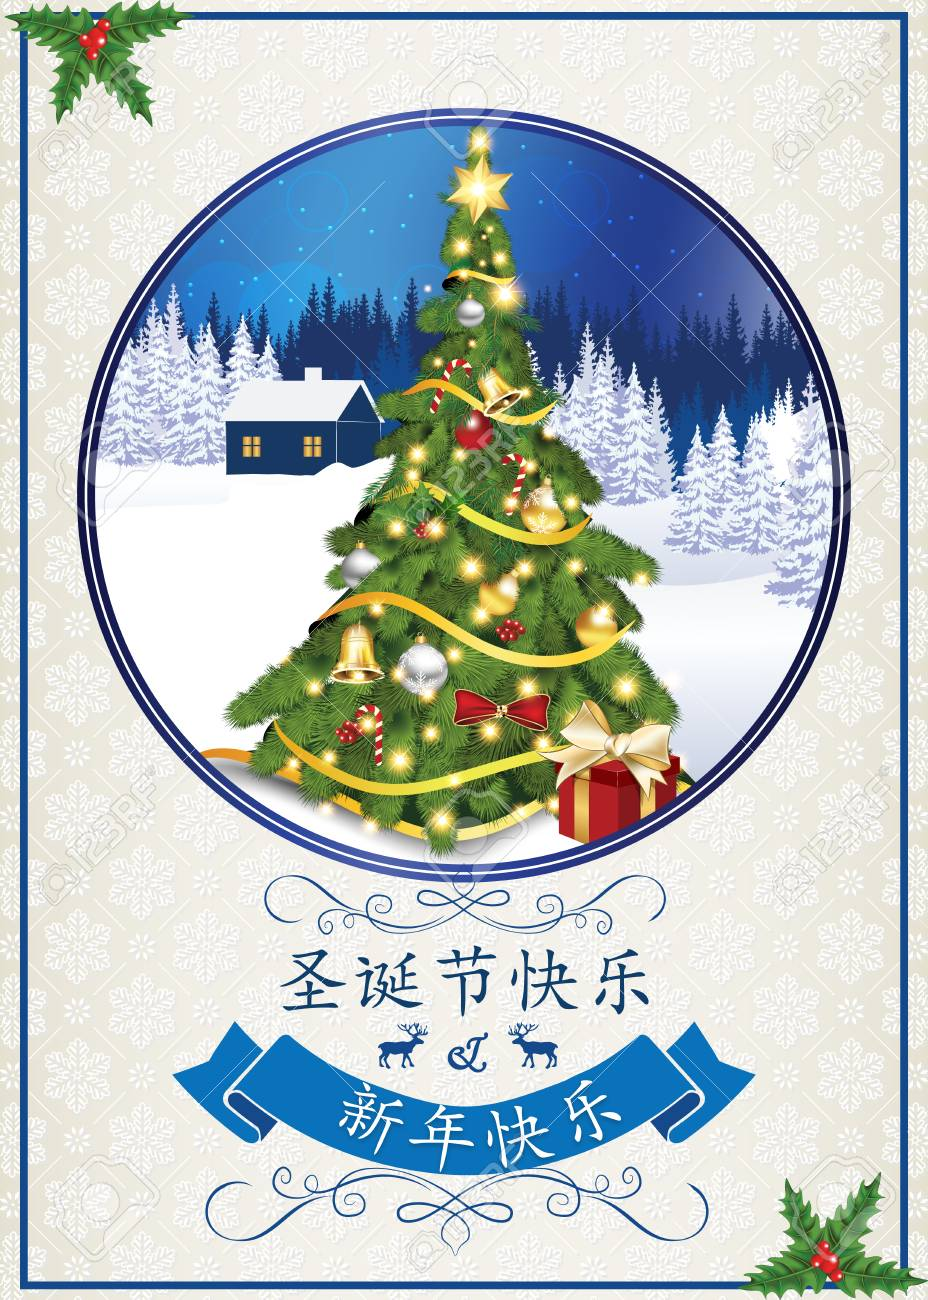 Merry Christmas In Chinese.Elegant Chinese Greeting Card For Winter Season Chinese Text